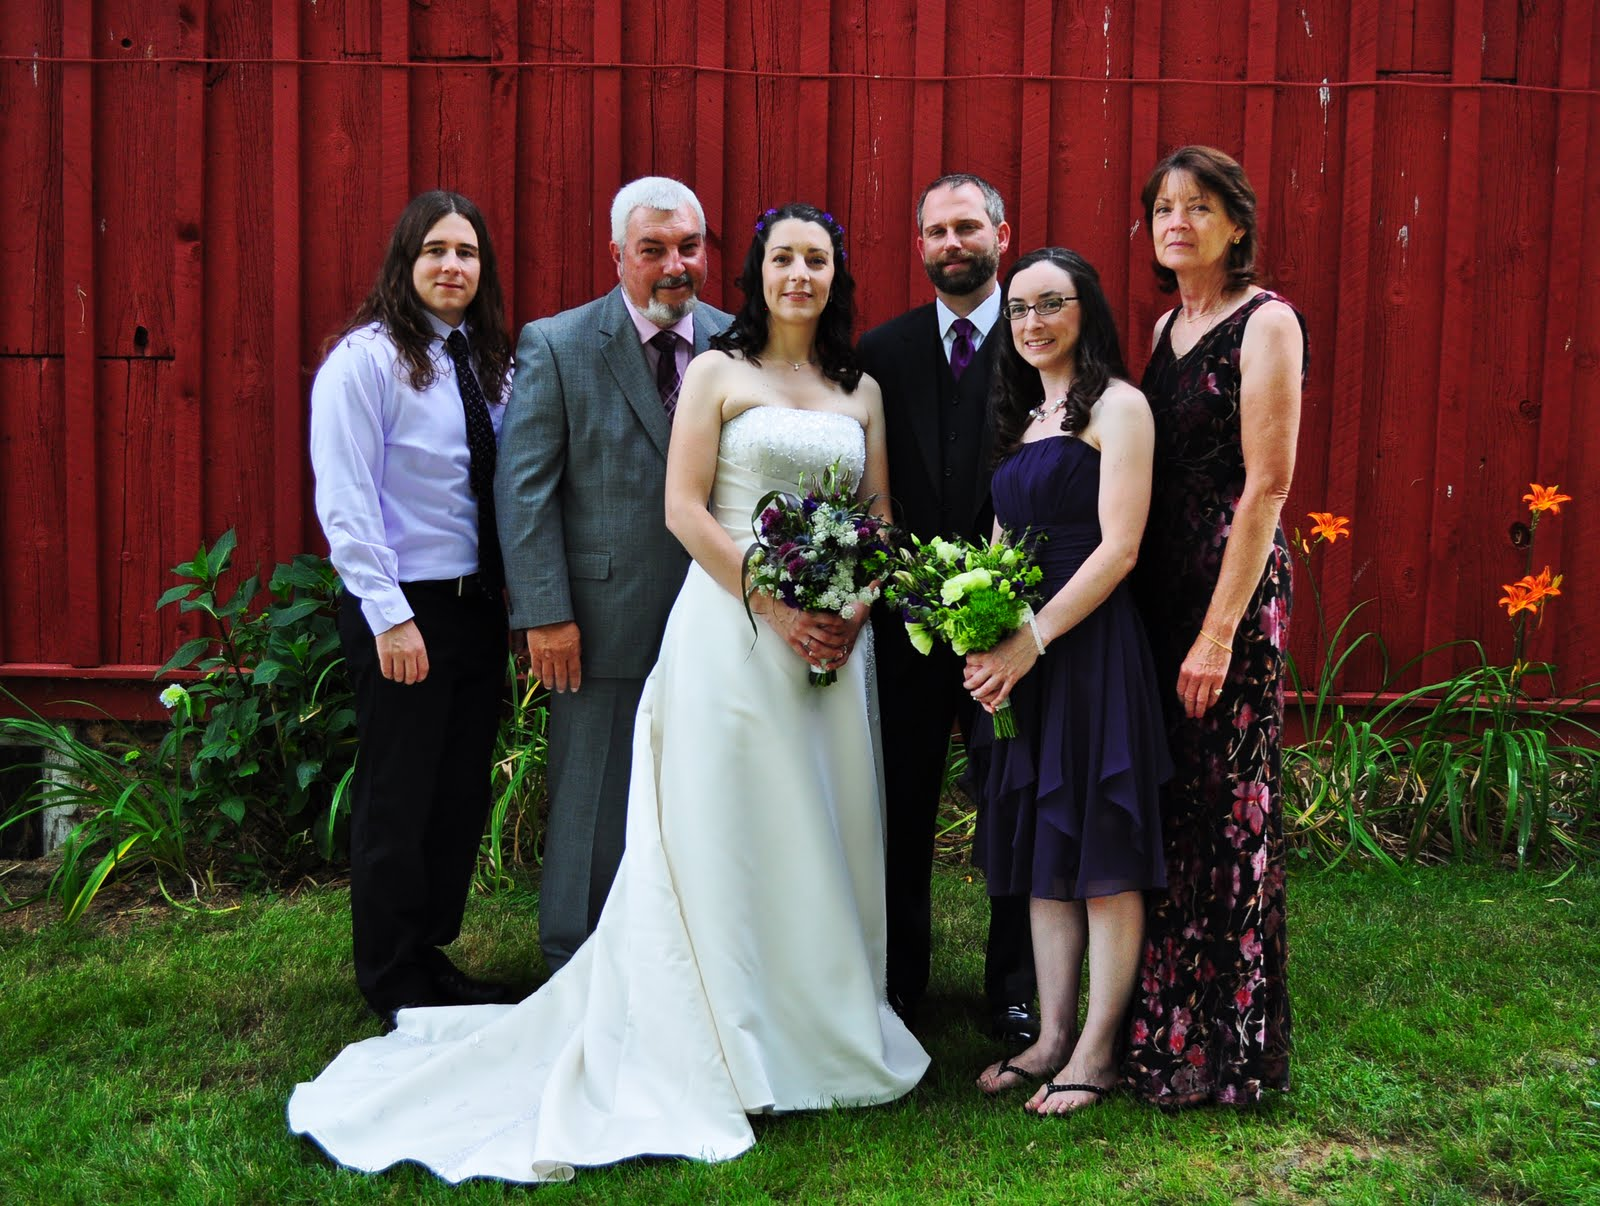 Noah hershey wedding